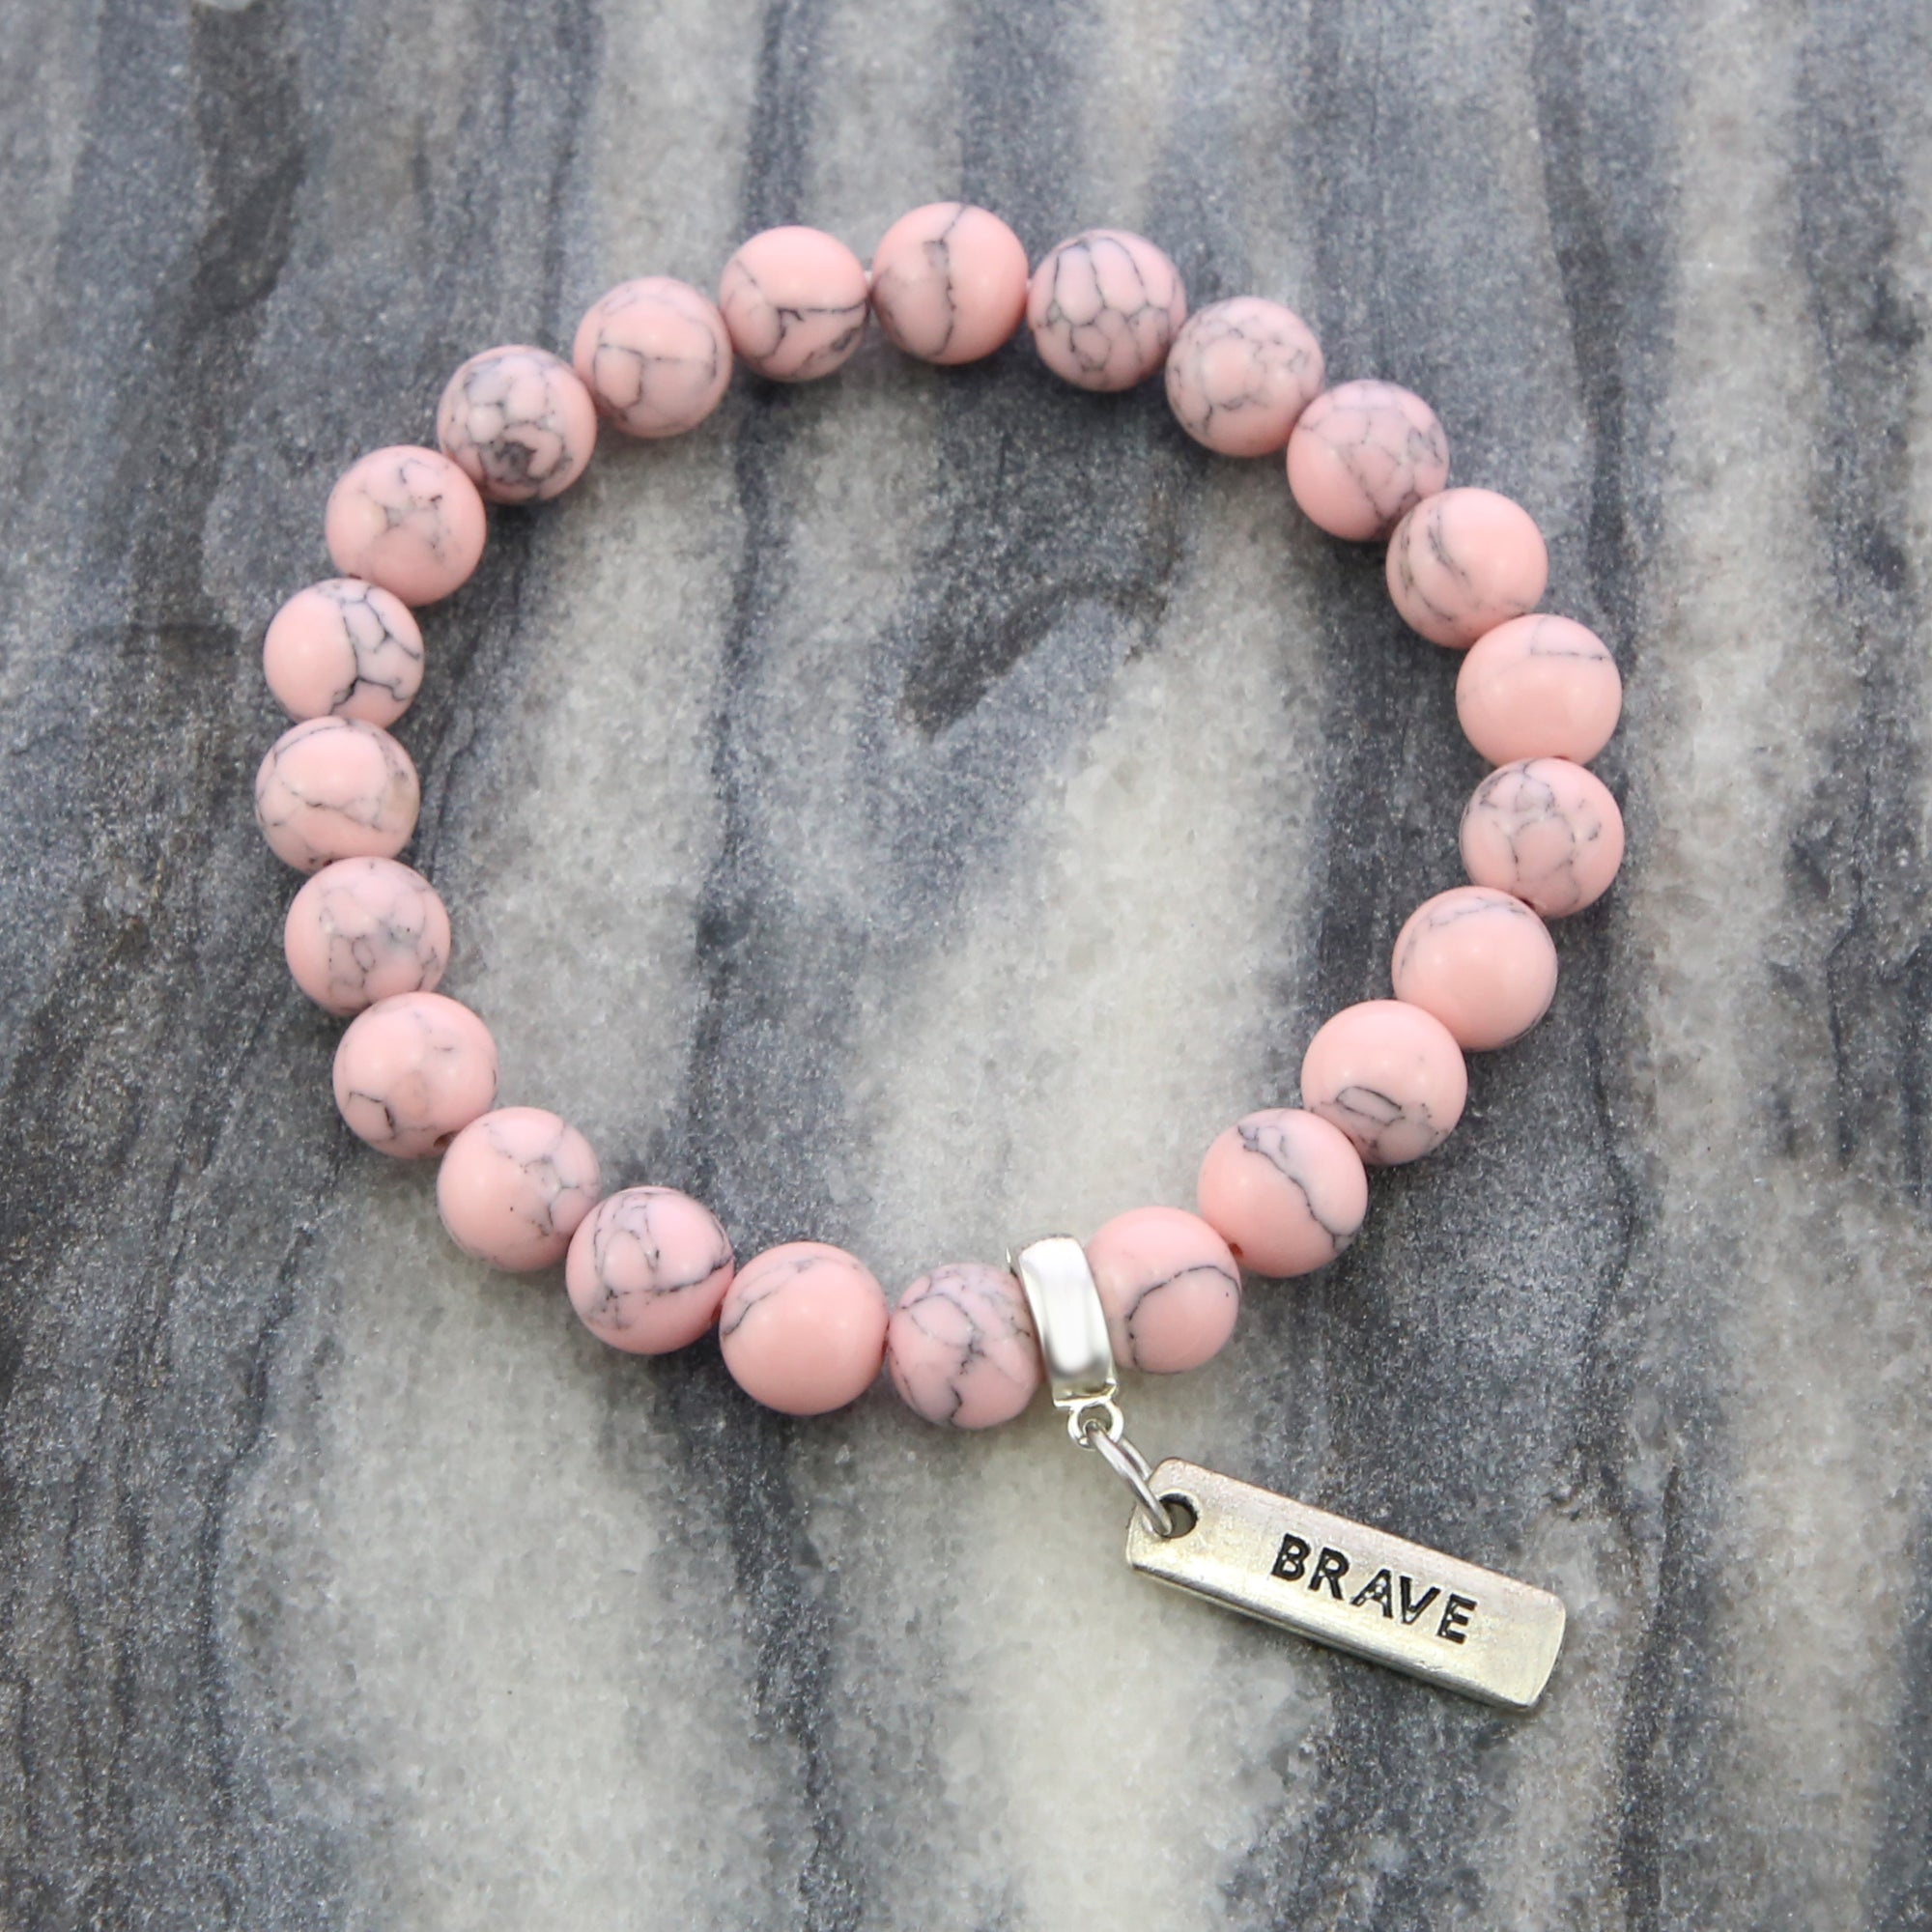 Stone Bracelet - Soft Pink Marbled Stone 8mm - with Word Charm